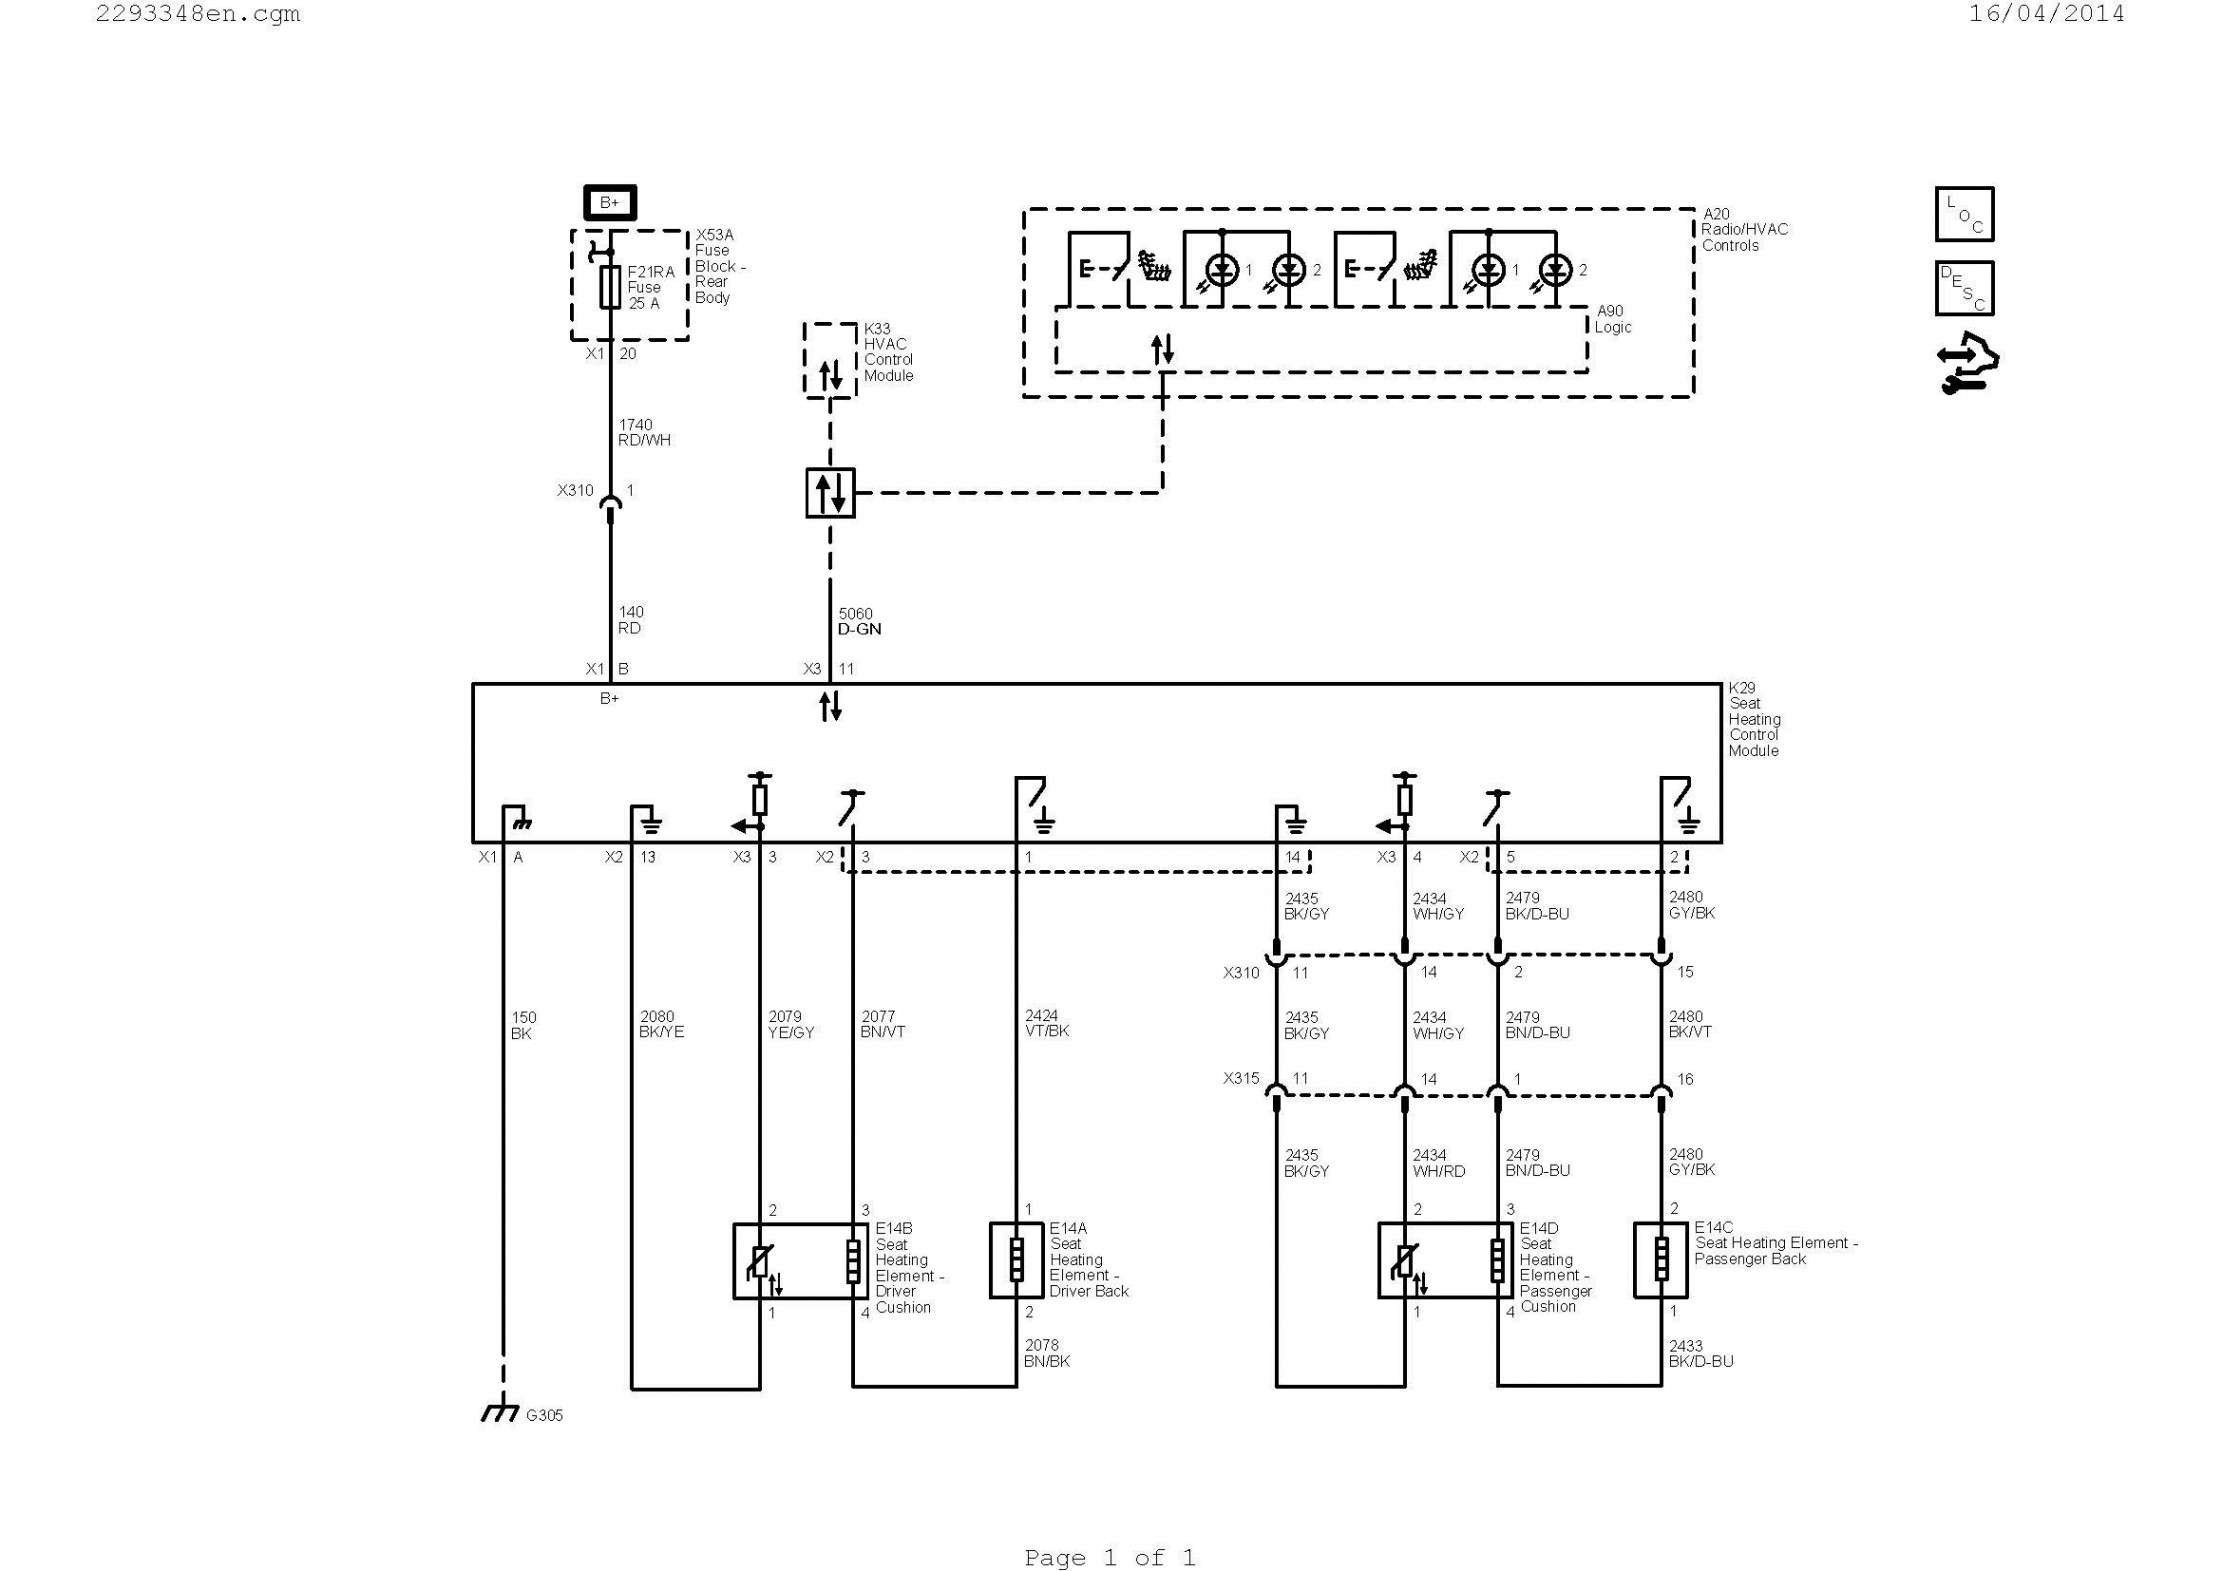 electrical panel wiring diagram Download-12 Electrical Panel Wiring Diagram s 1-e